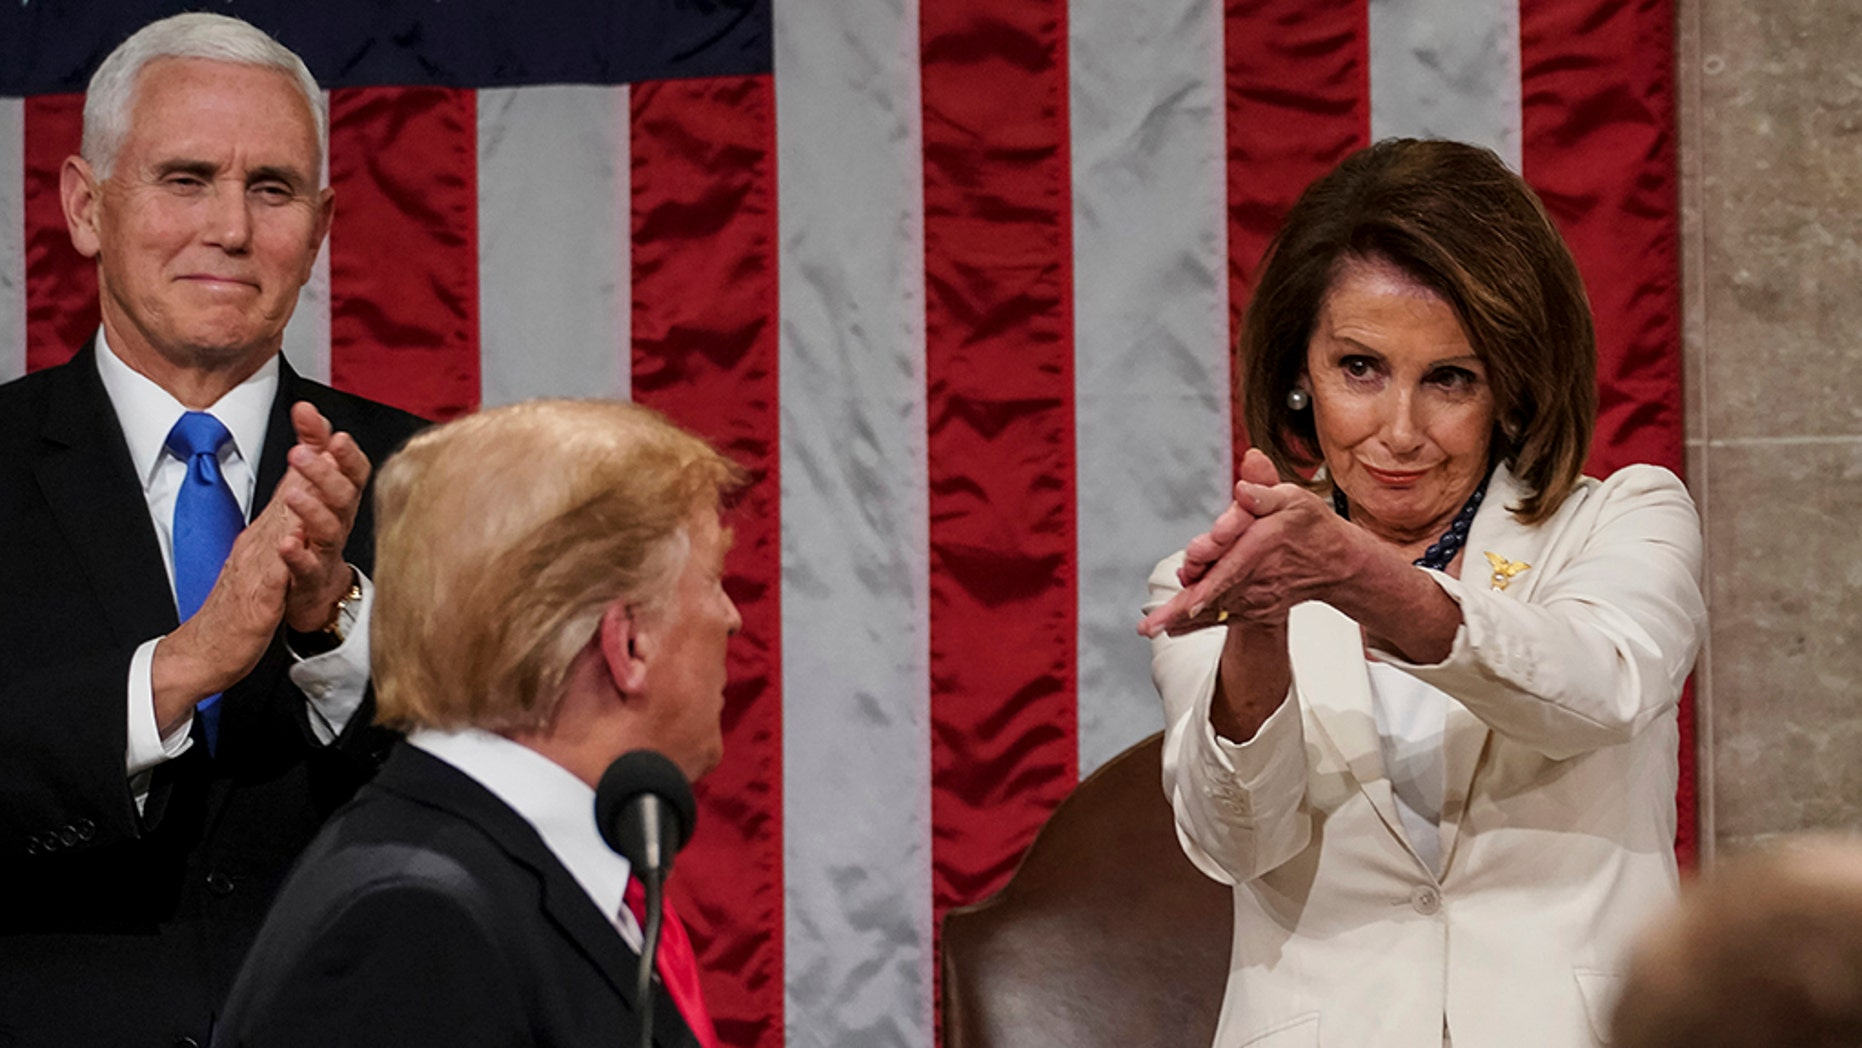 President Trump turns to House Speaker Nancy Pelosi as he delivers his State of the Union address to a joint session of Congress on Capitol Hill in Washington. (Doug Mills/The New York Times via AP, Pool)